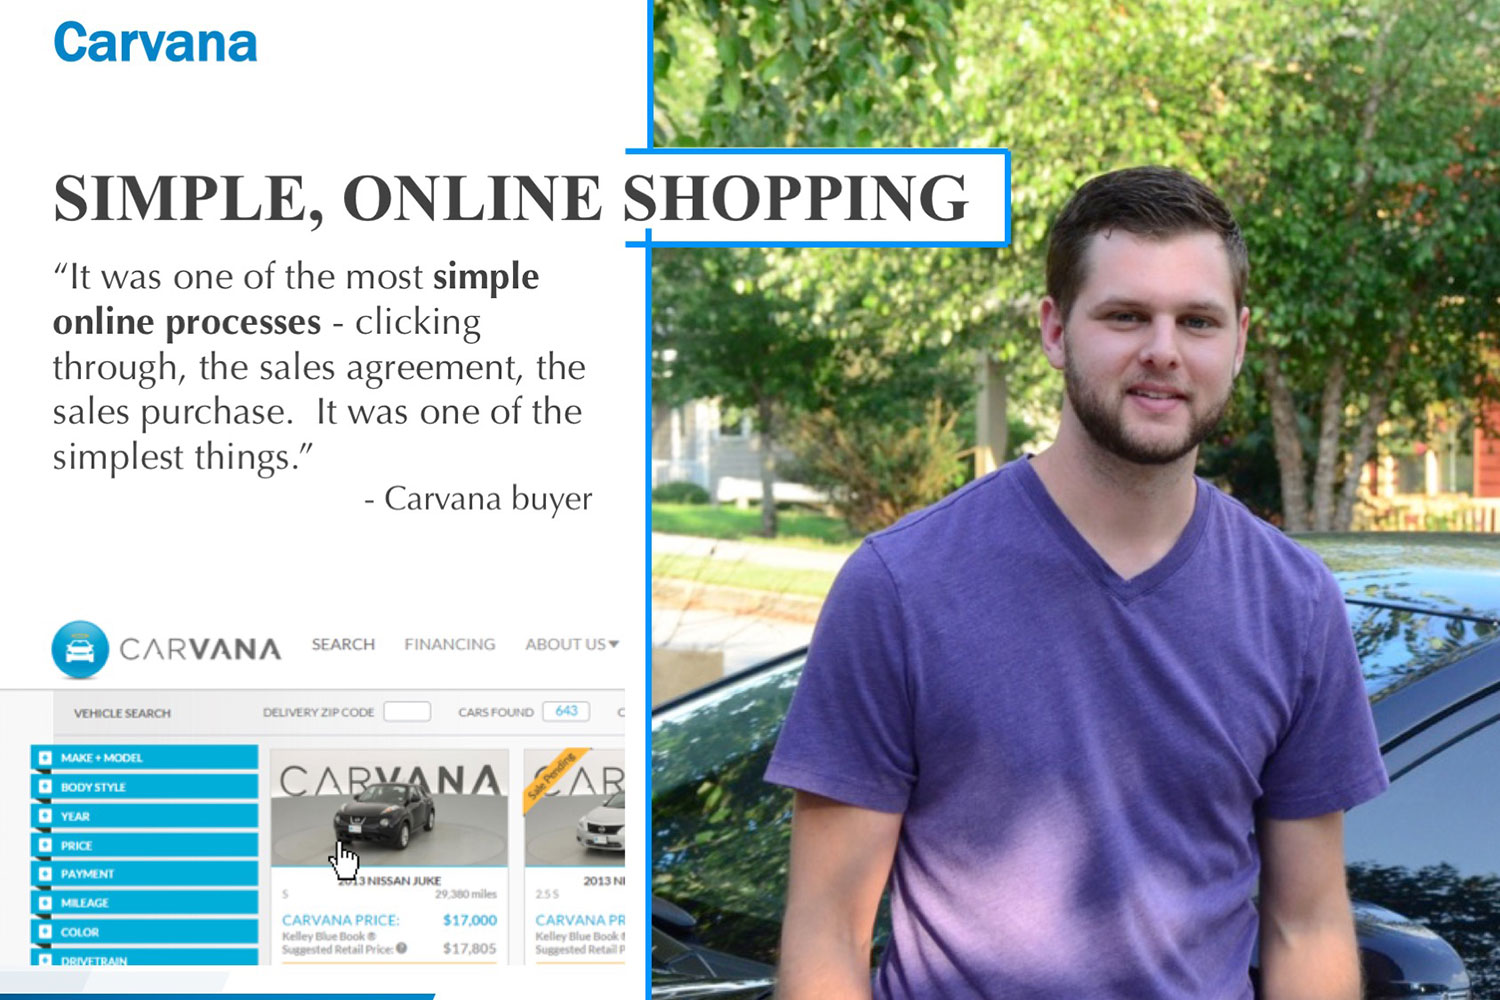 Car Buying Market Research - Carvana - Vital Findings